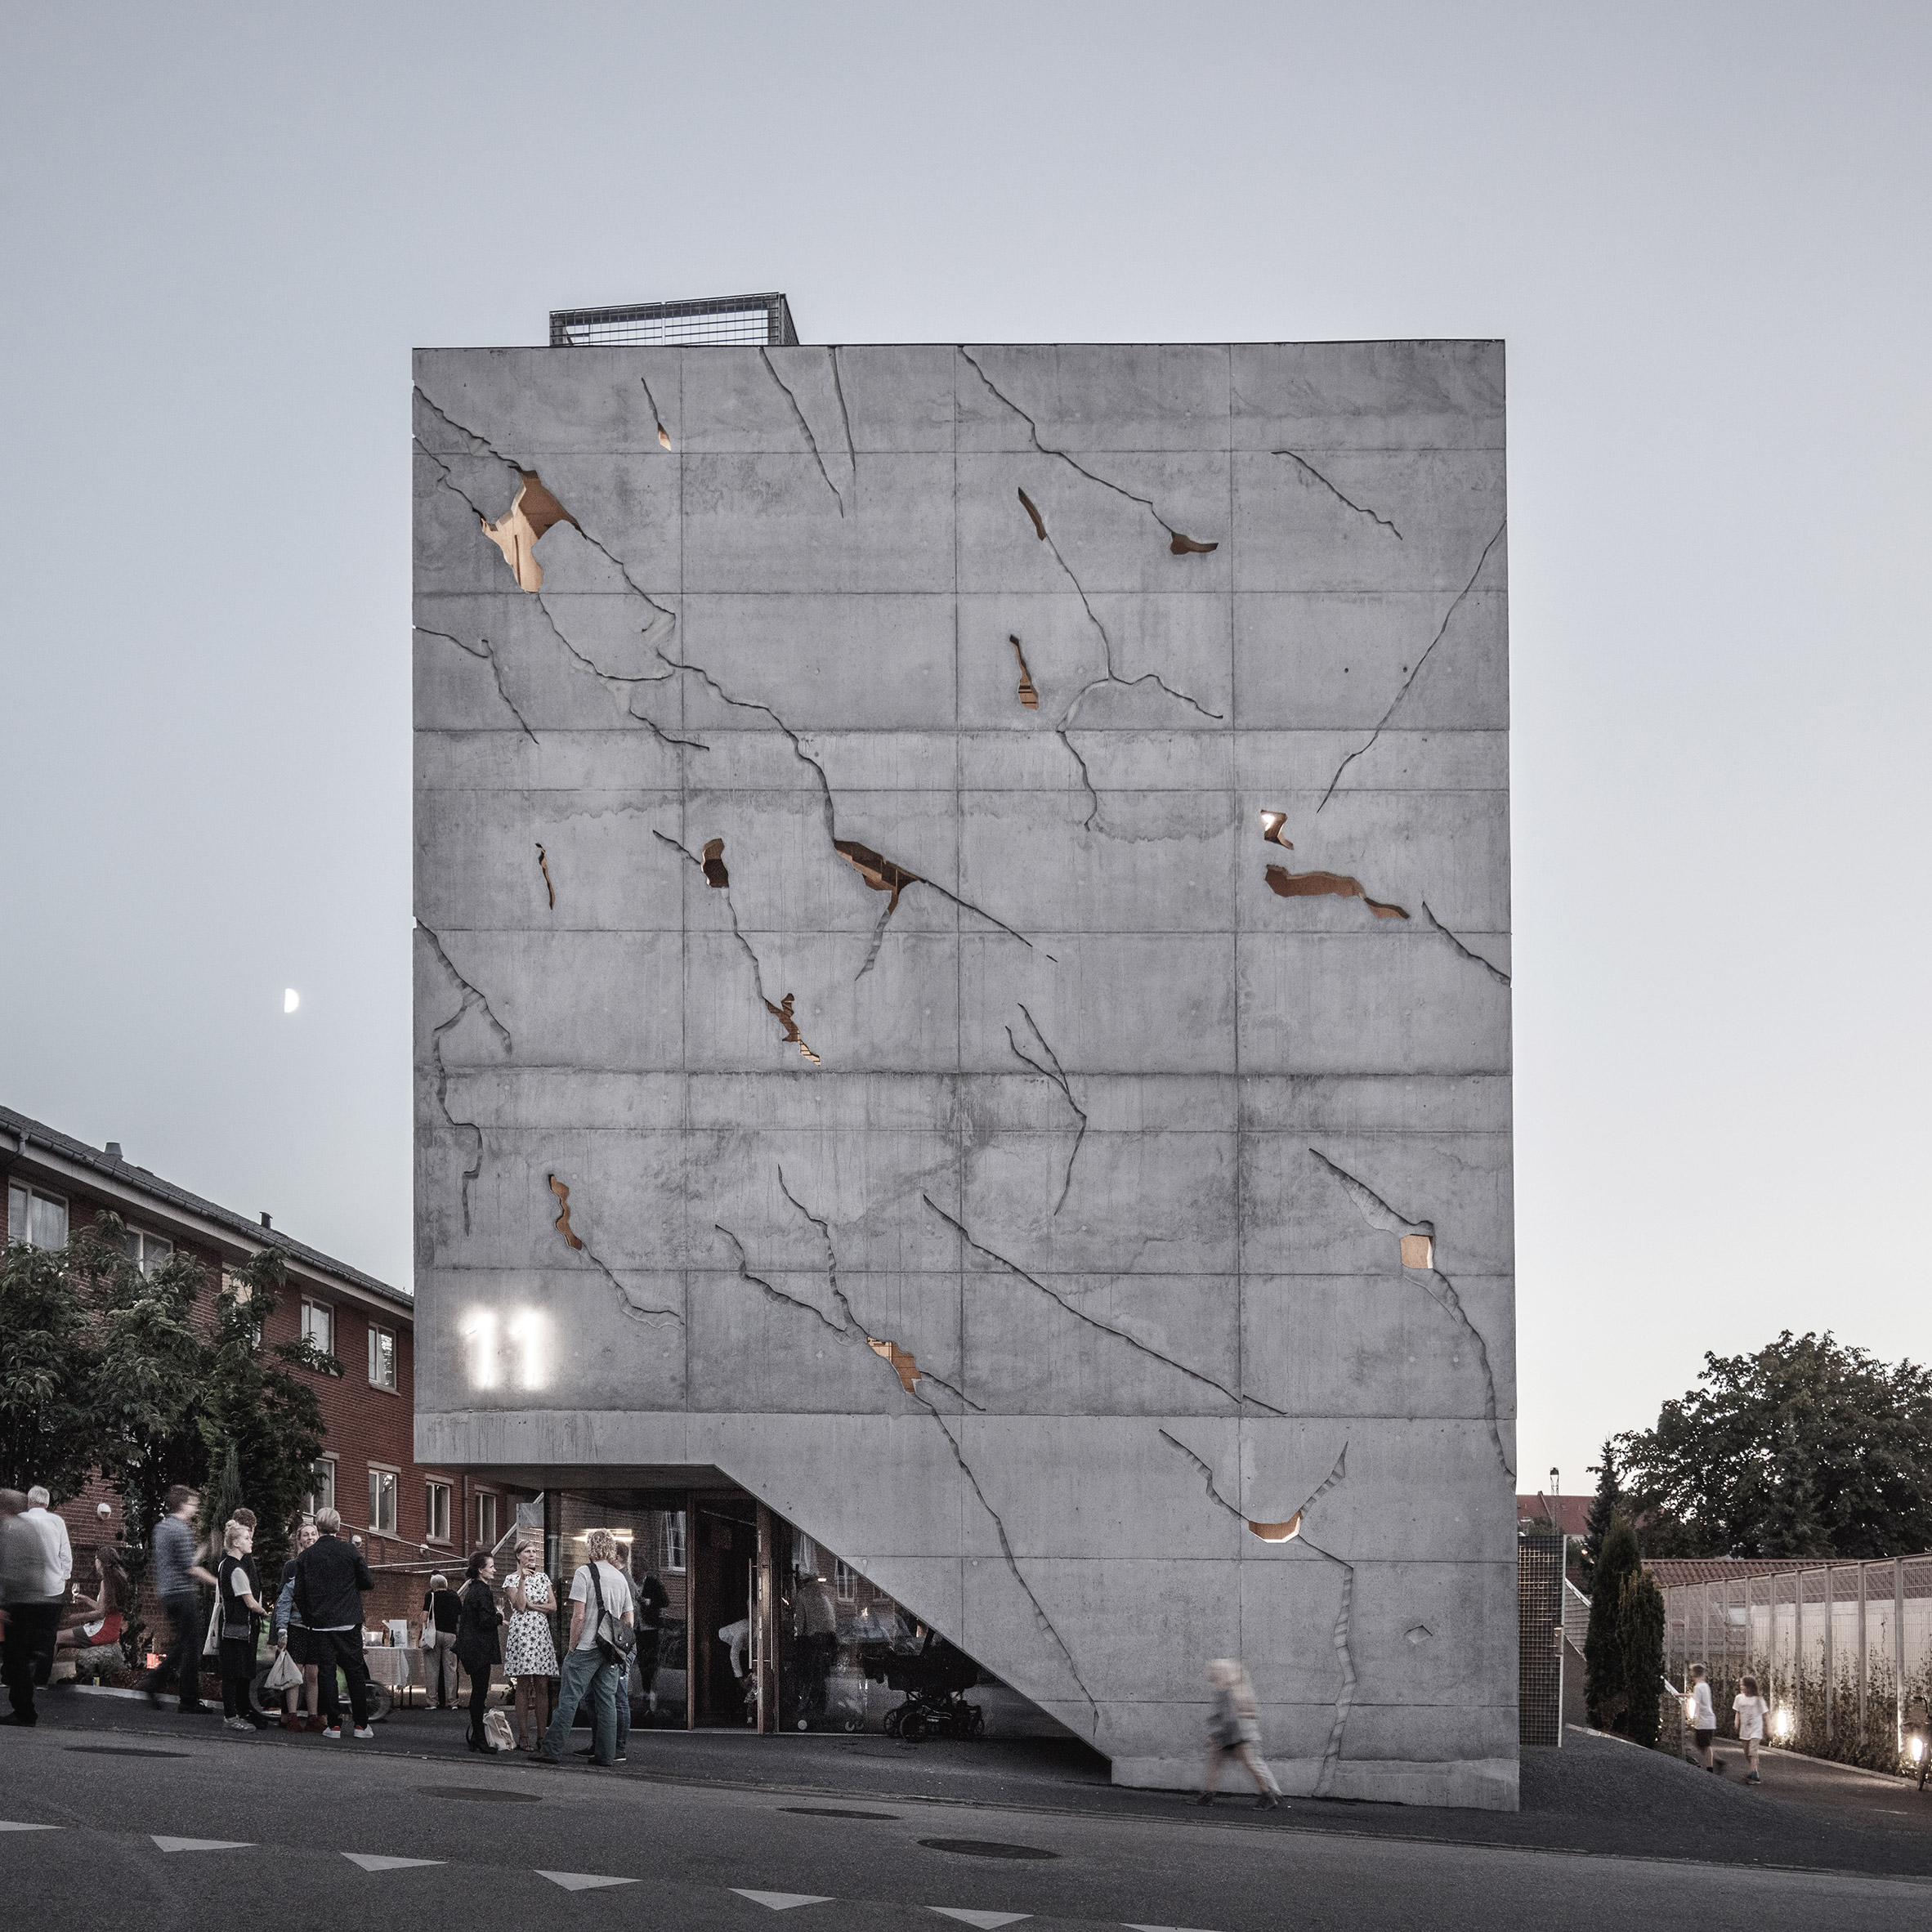 Impressive Cracked Building in Aarhus